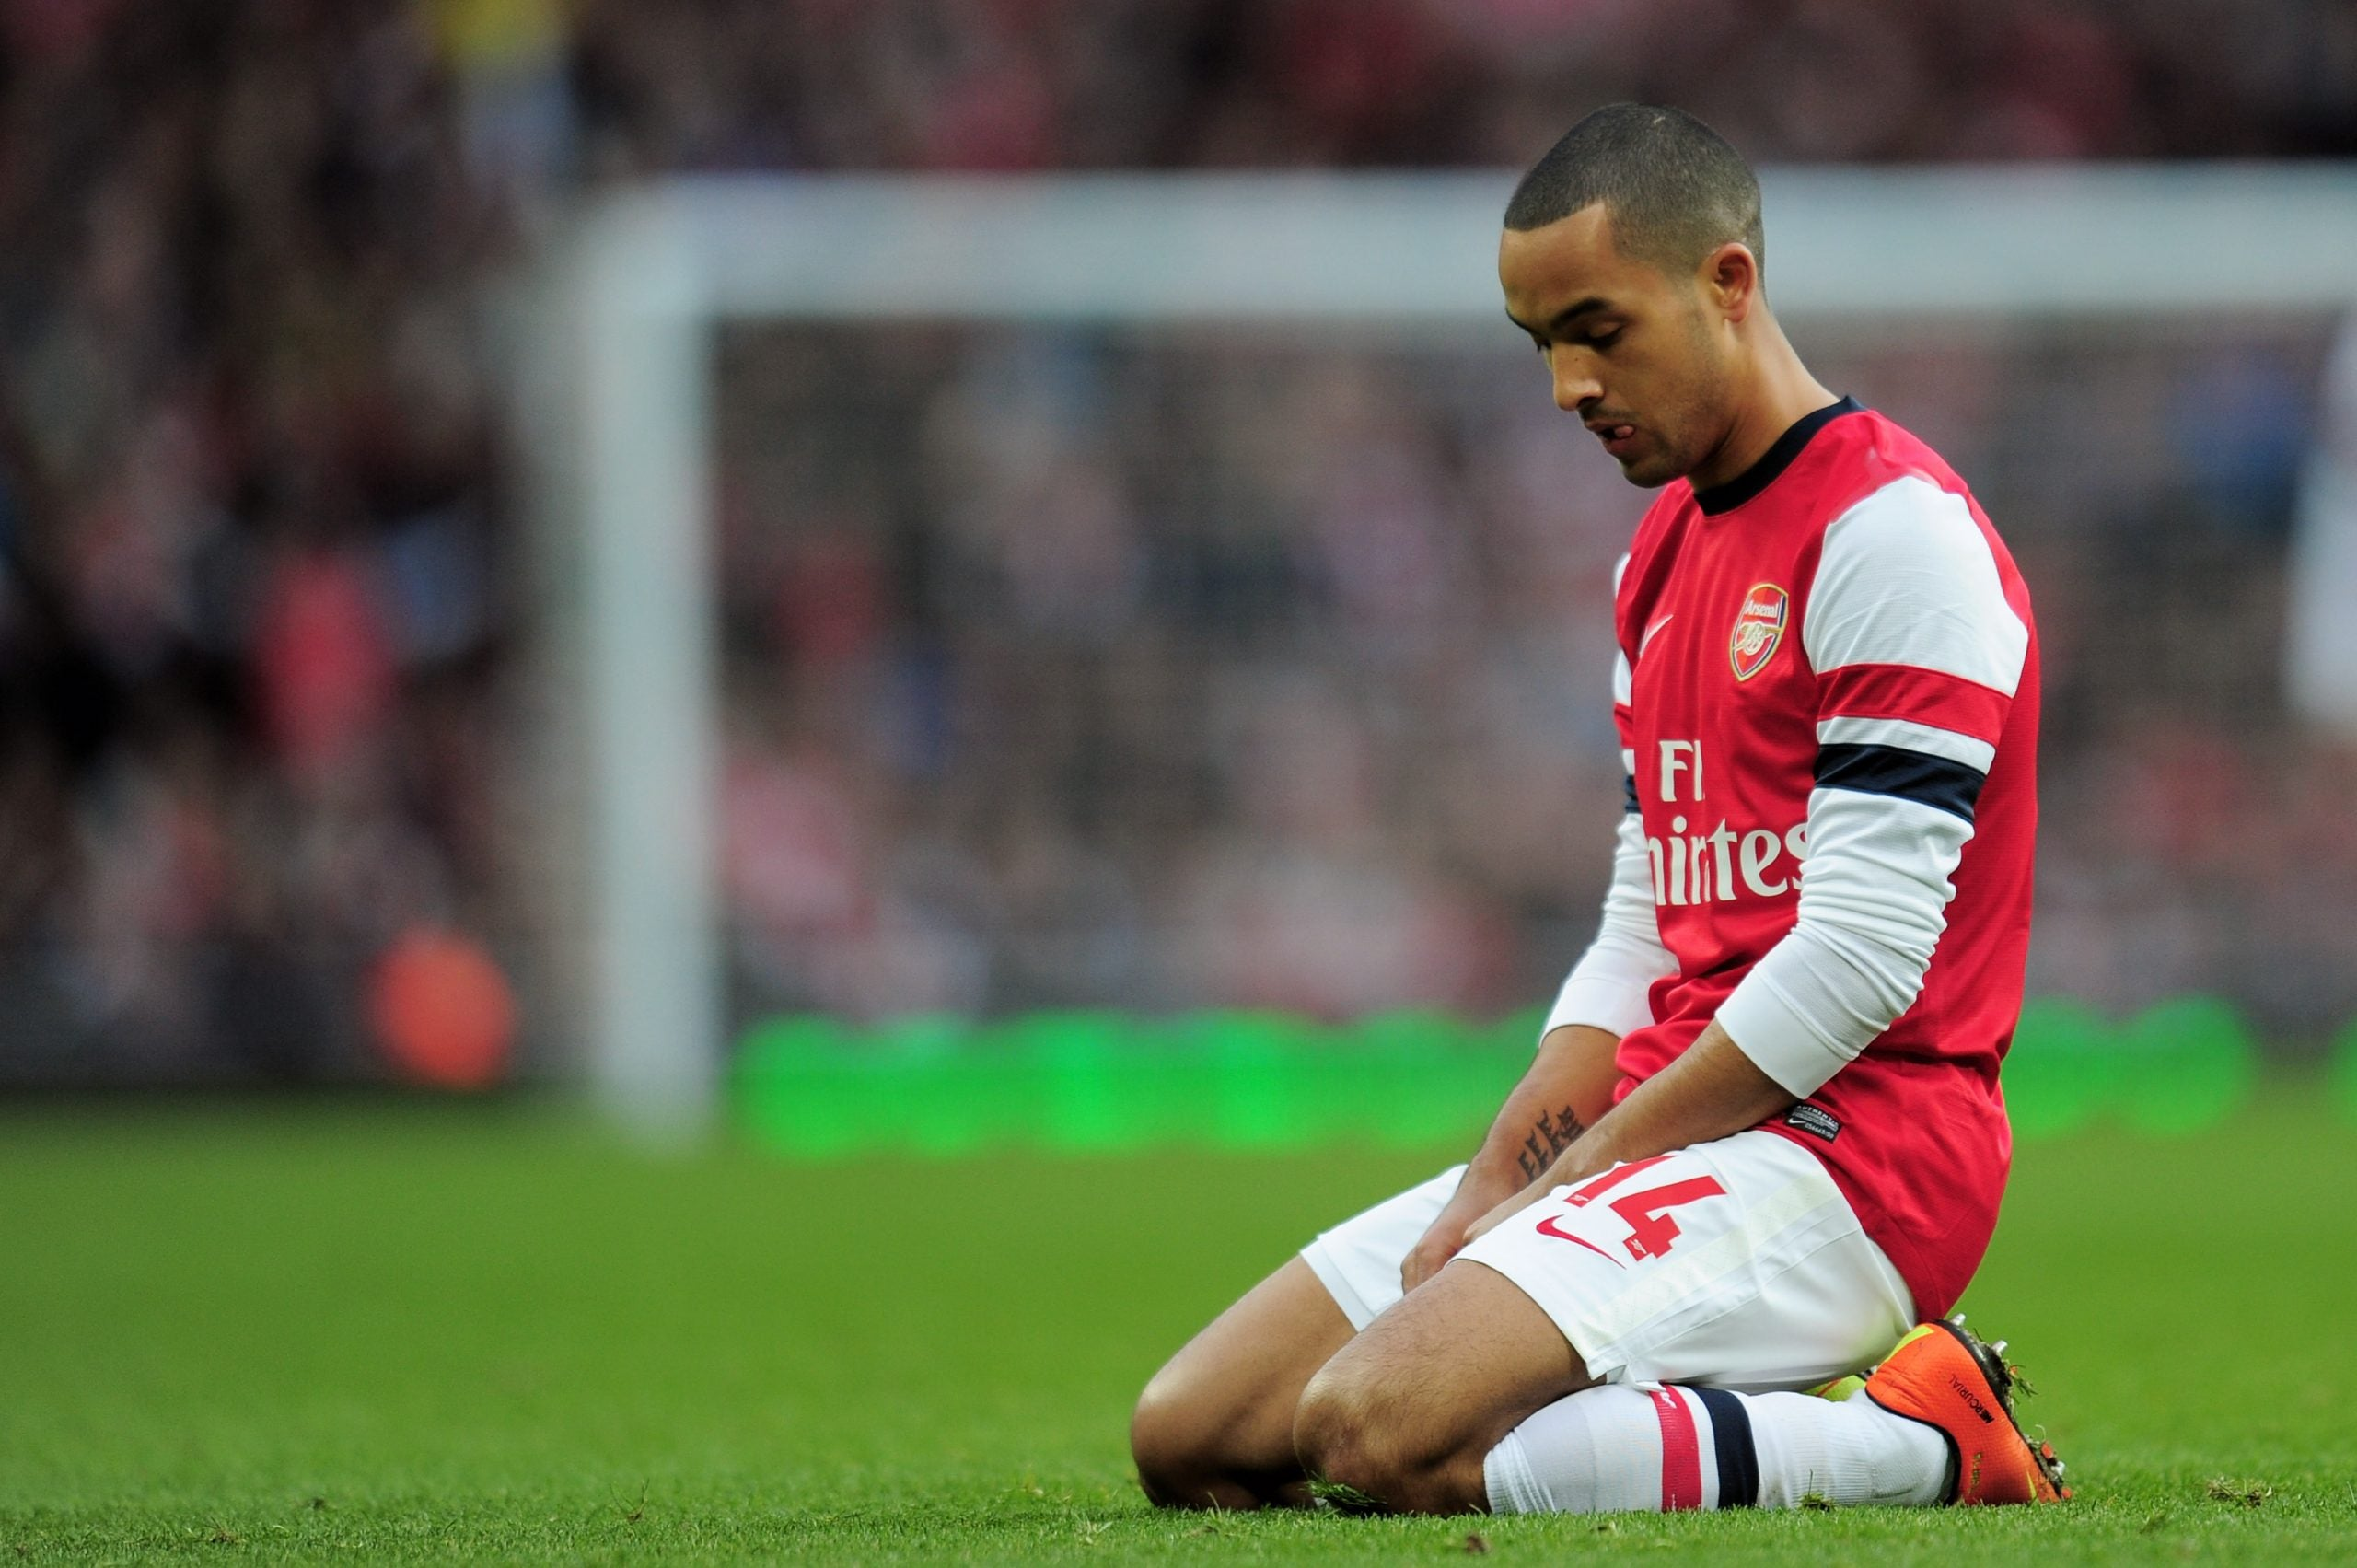 Hype, injury, excess… players can waste their potential for many reasons. Is niceness one of them?